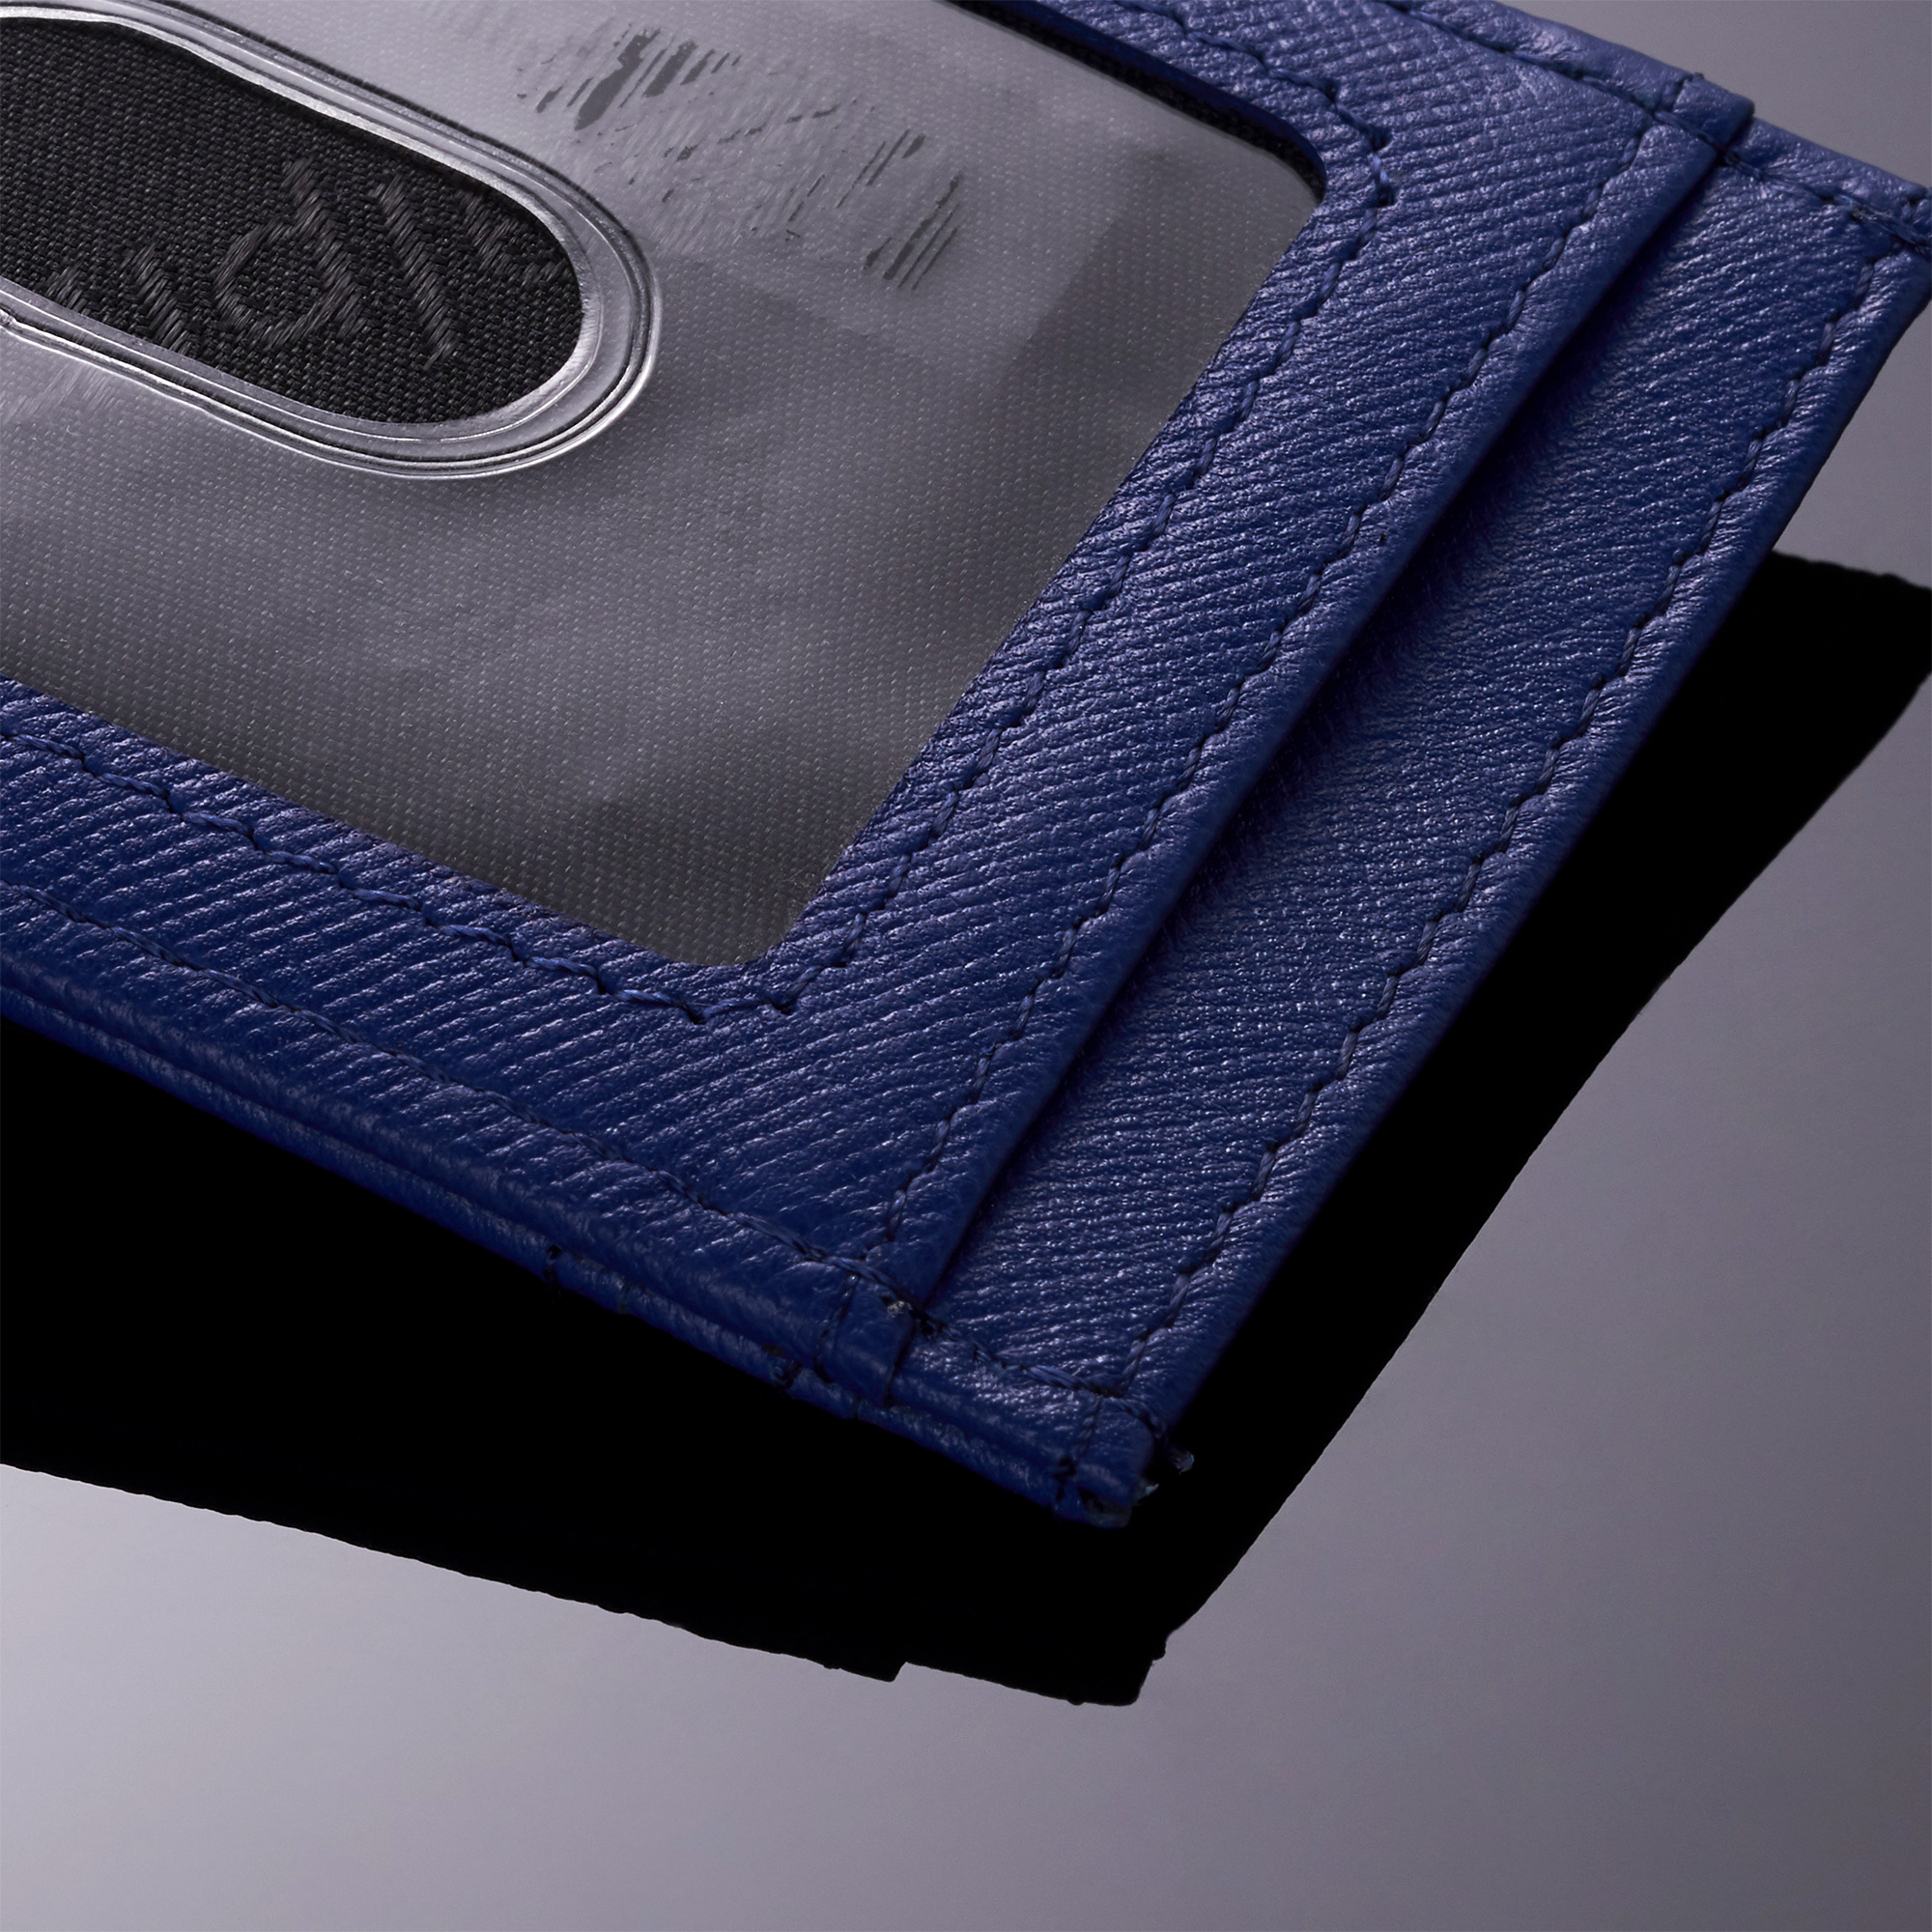 AlpineSwiss-Mens-Leather-Money-Clip-Magnet-Front-Pocket-Wallet-Slim-ID-Card-Case thumbnail 51